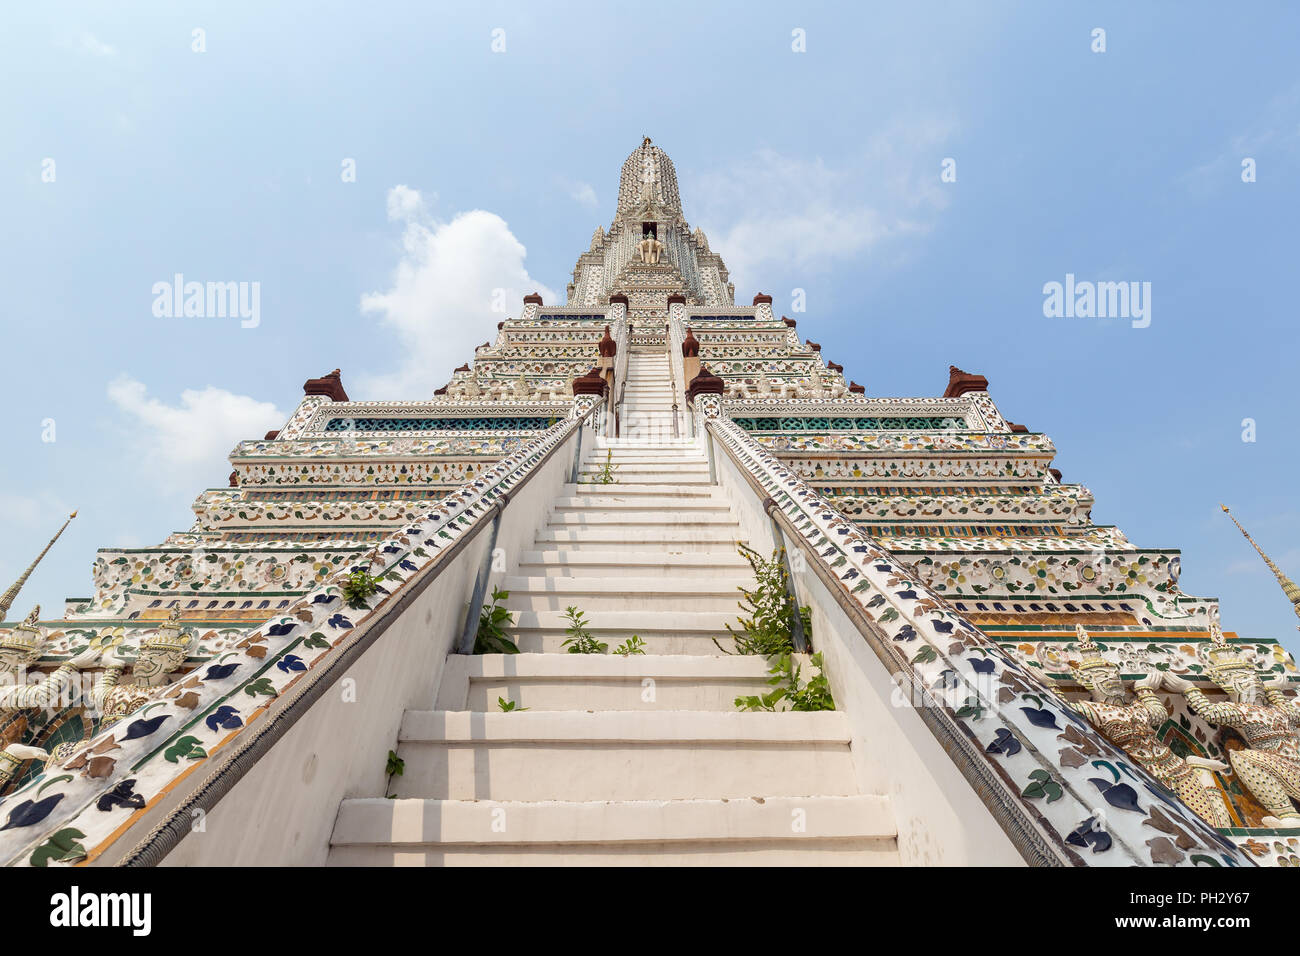 Front and low angle view of decorated Wat Arun temple in Bangkok, Thailand, on a sunny day. - Stock Image